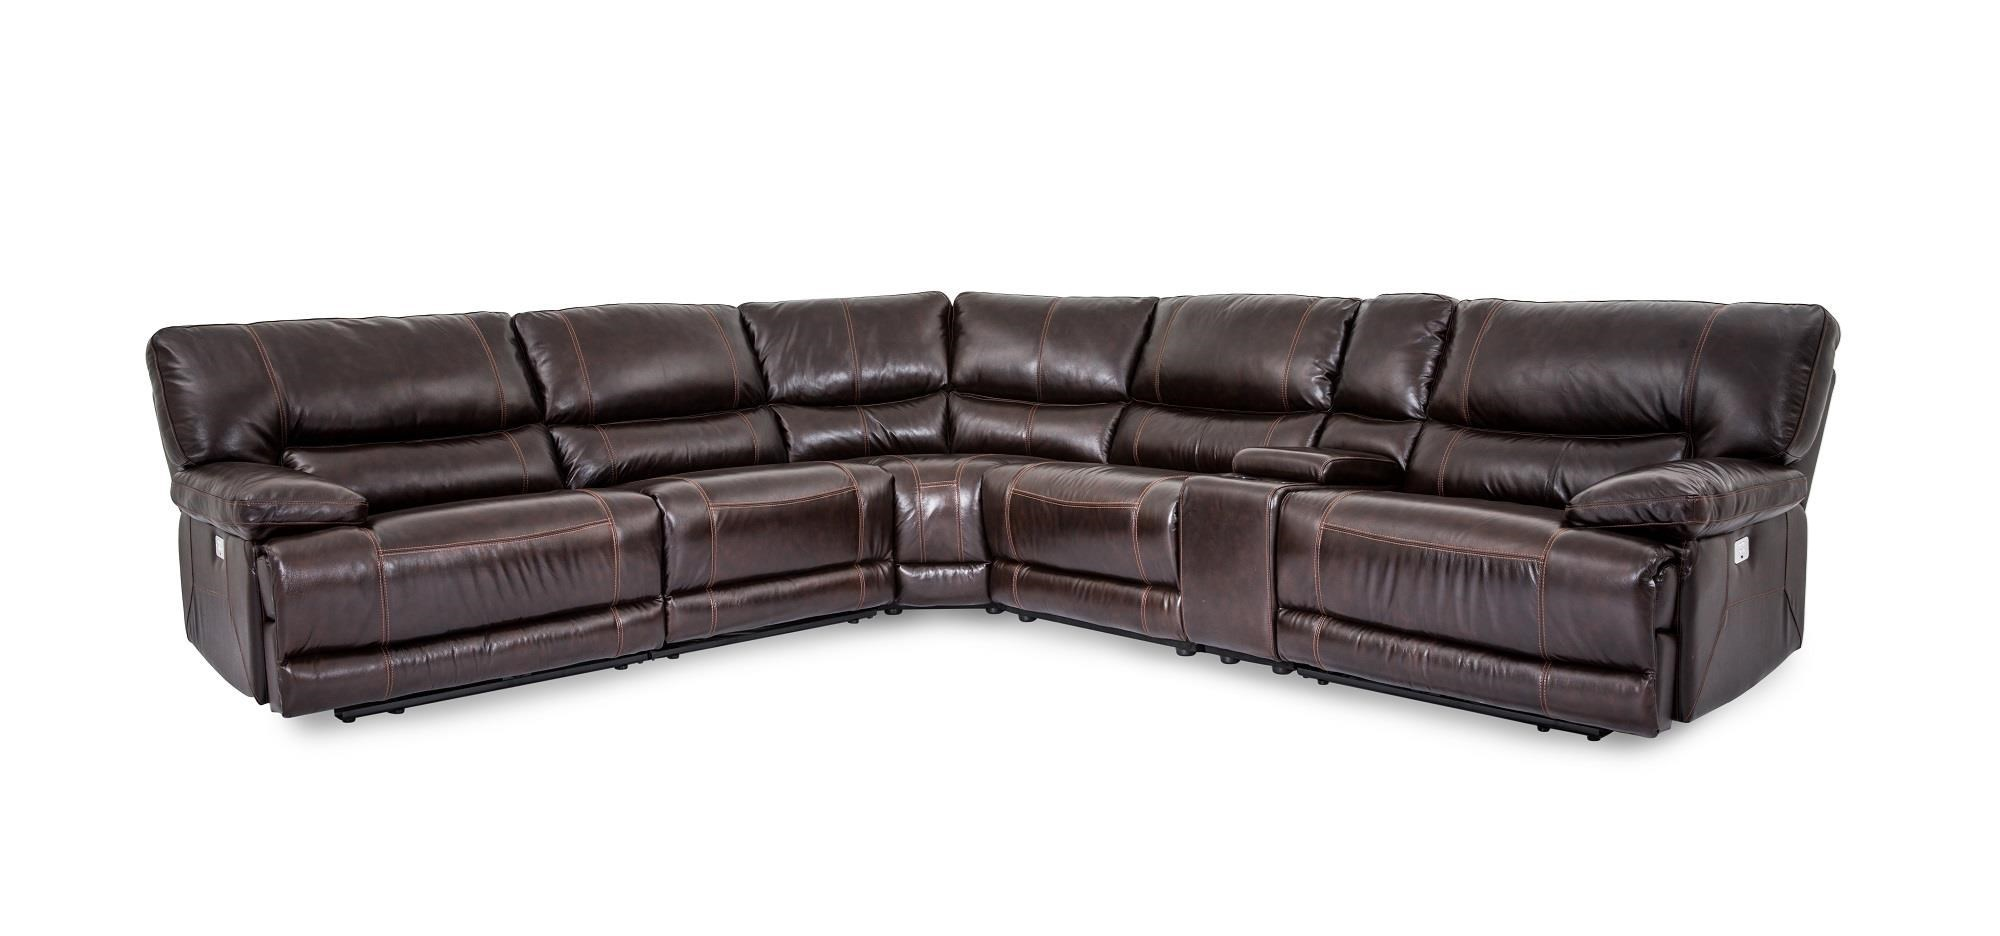 Cheers Sofa Collins Leather Power Reclining 6 Piece Sectional - Great American Home Store - Reclining Sectional Sofas  sc 1 st  Great American Home Store & Cheers Sofa Collins Leather Power Reclining 6 Piece Sectional ... islam-shia.org